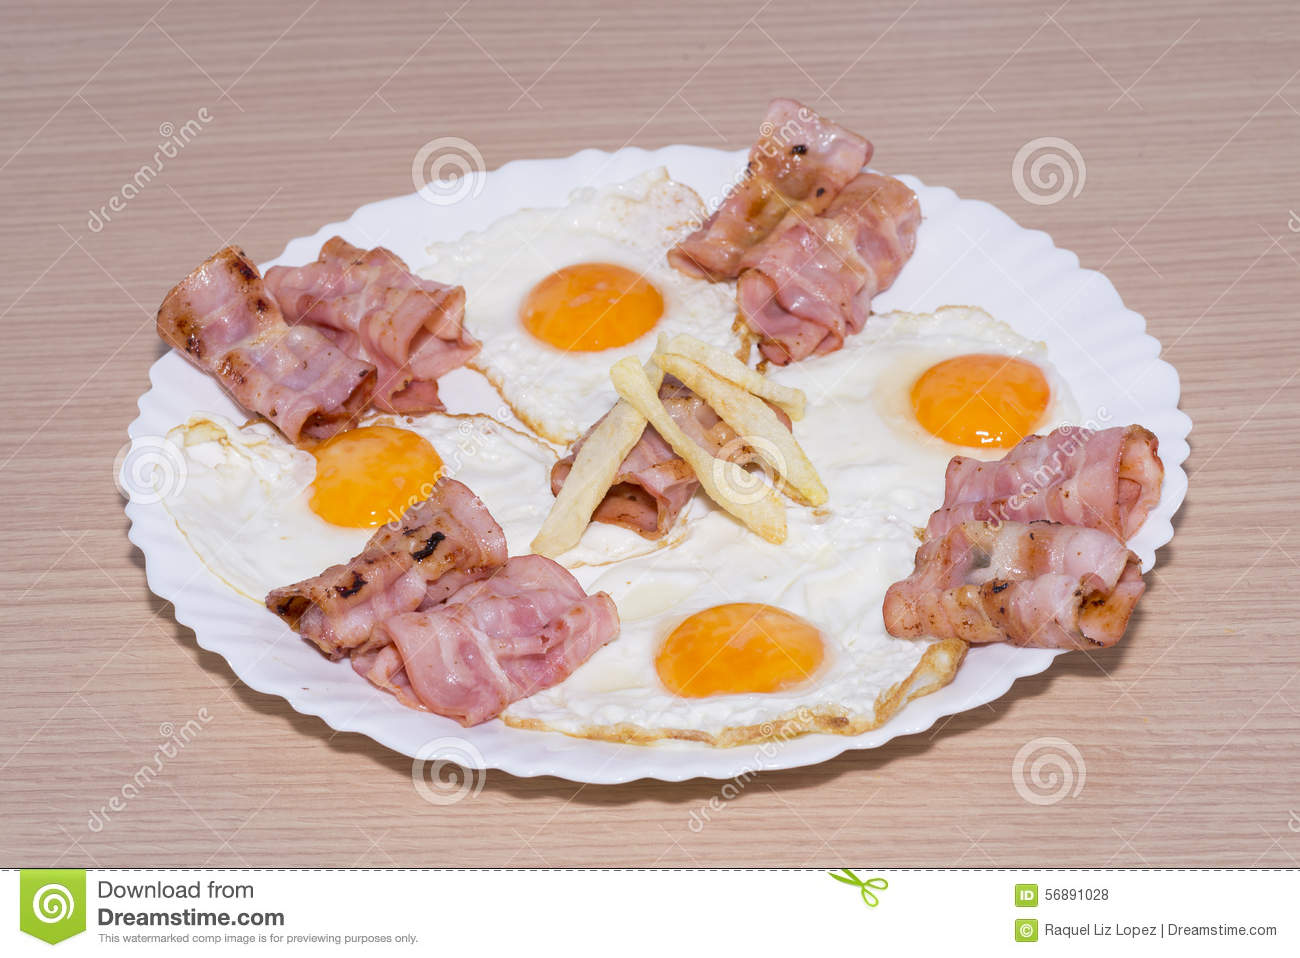 Bacon and eggs.